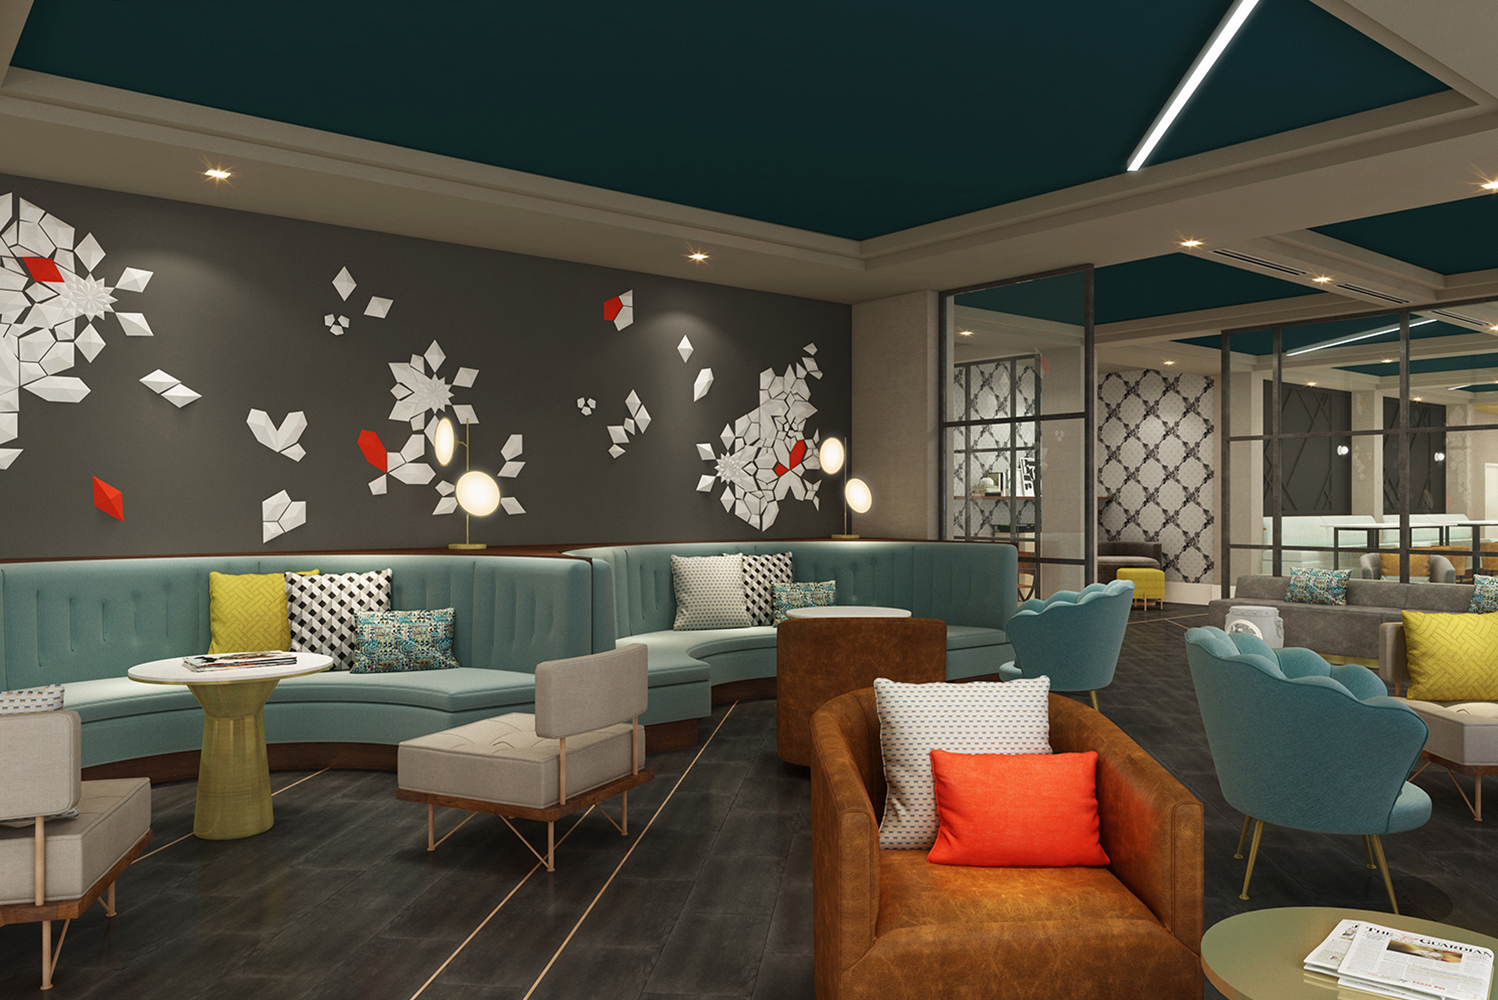 Woodbine hired C+TC Studio of Atlanta as the architect and interior designer for guestrooms and the hotel's rooftop bar, Whiskey Blue.